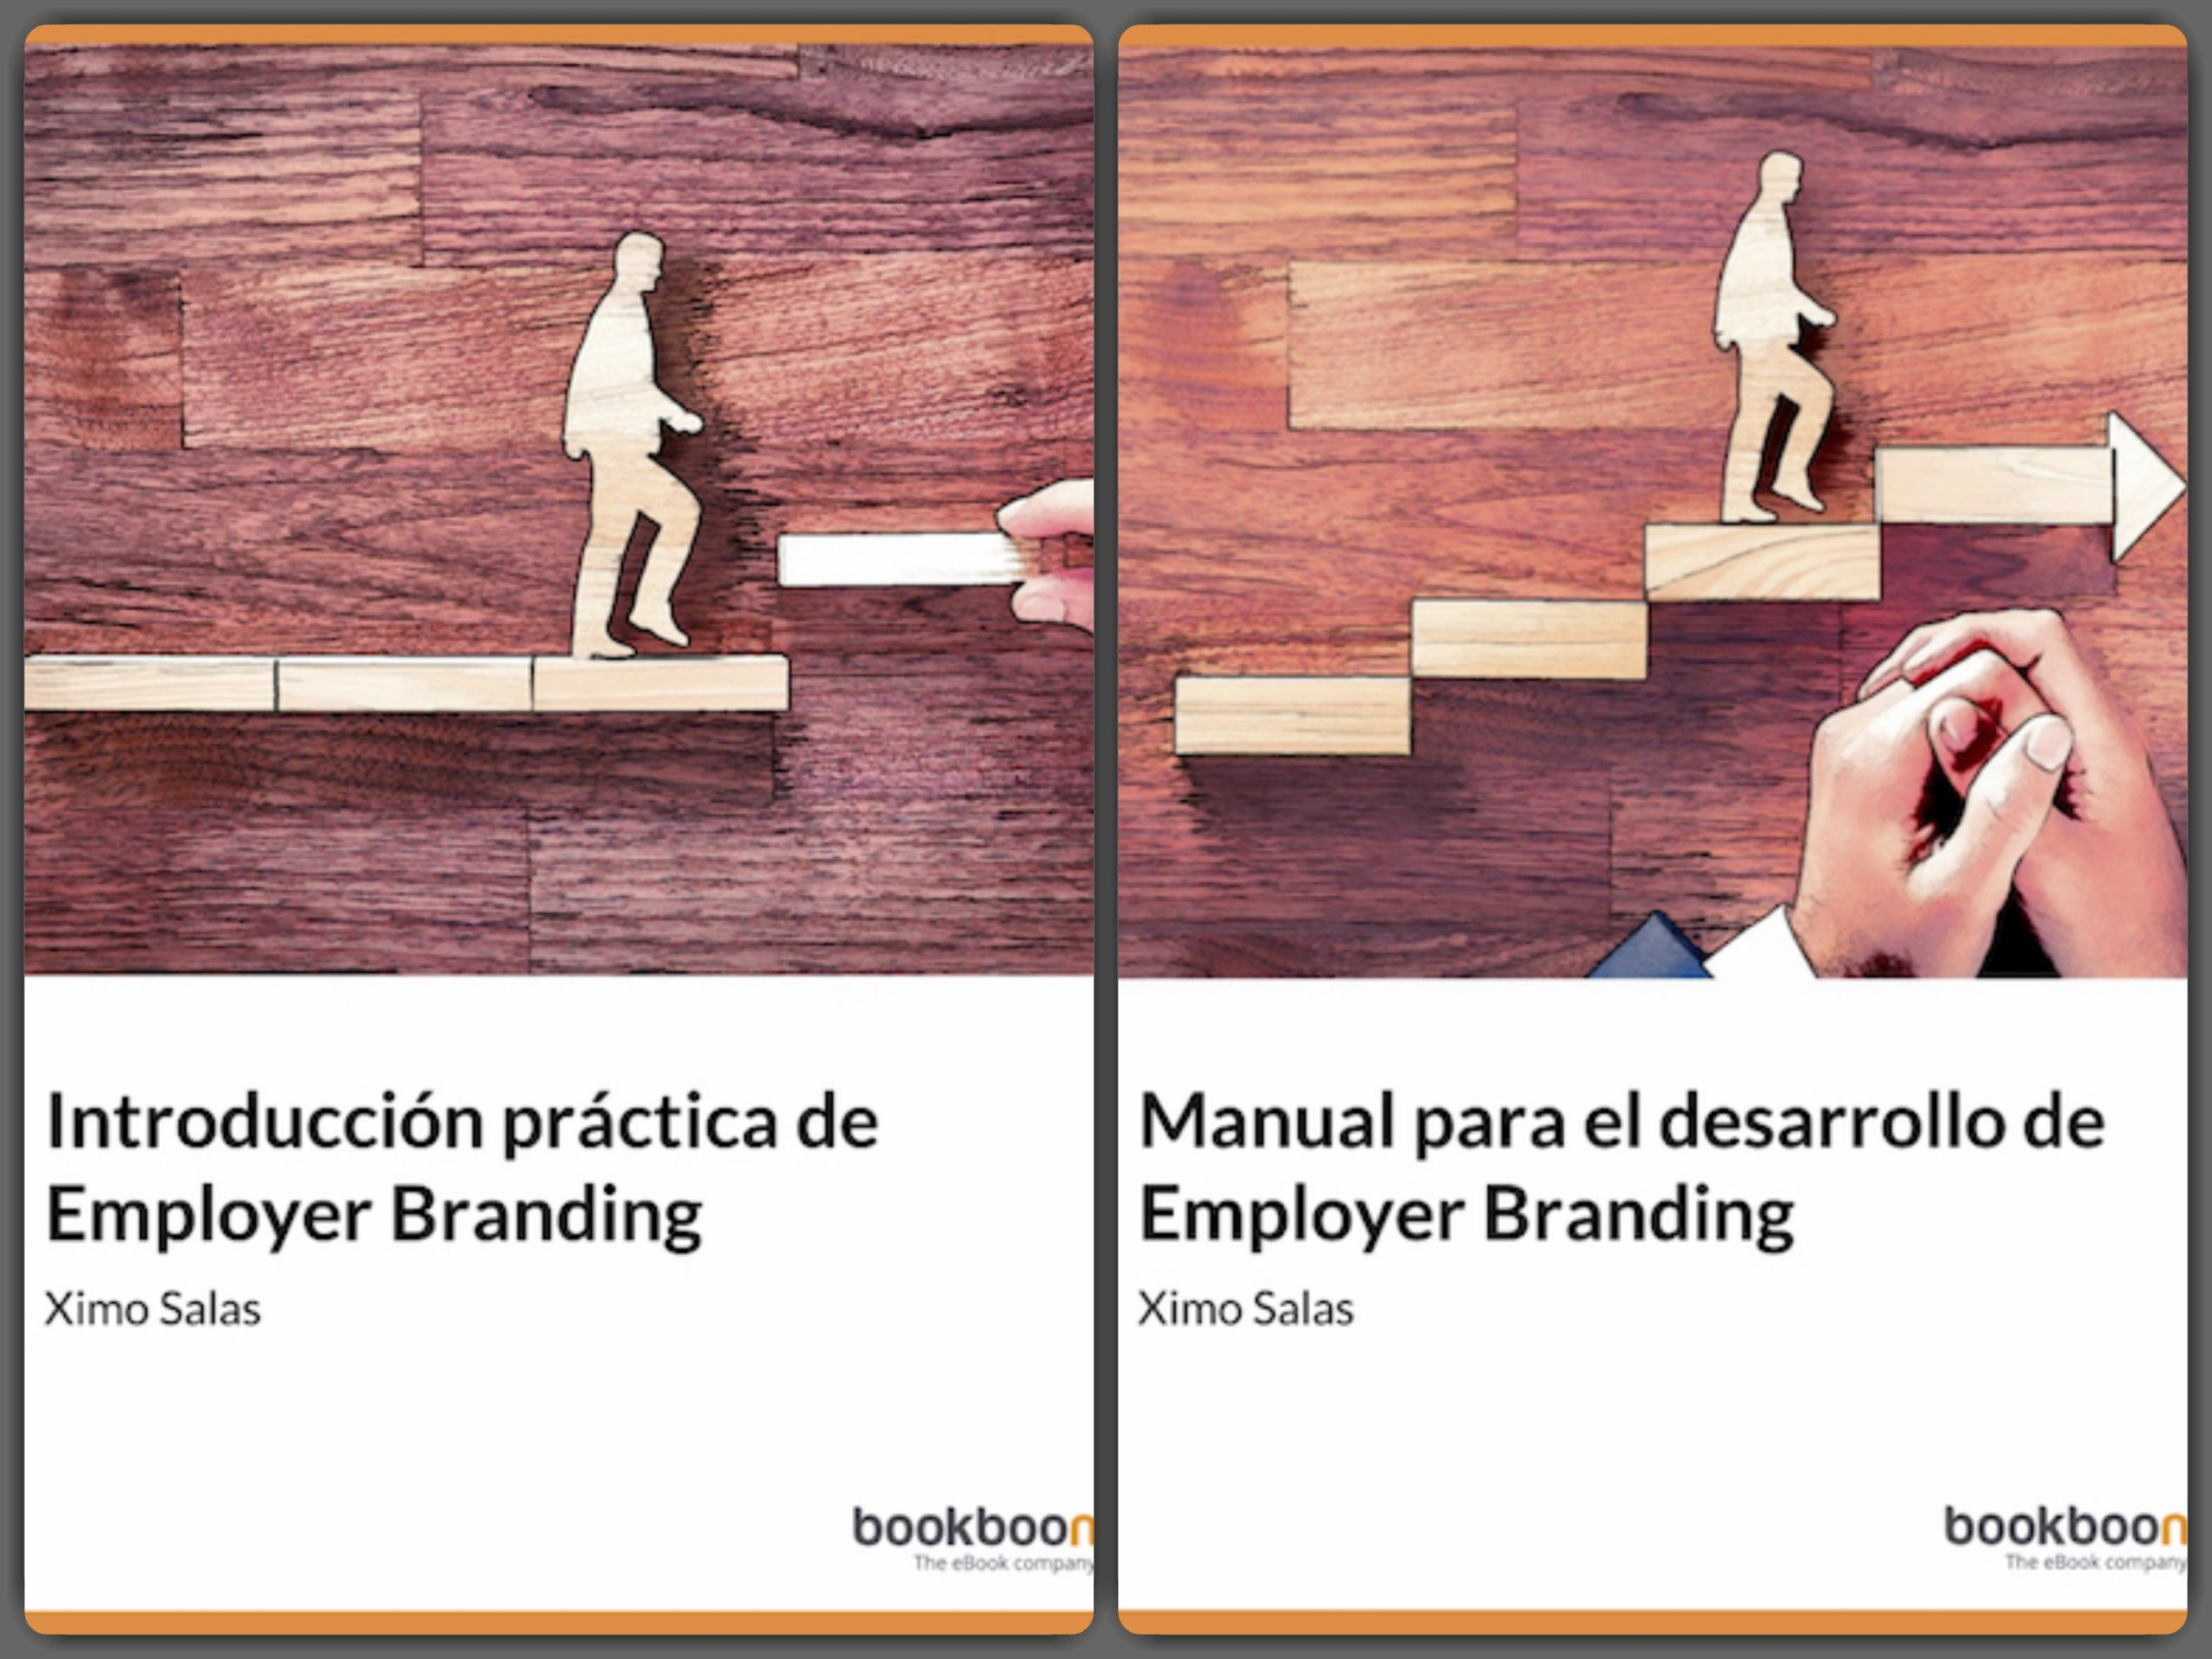 <strong>Manual para el desarrollo de Employer Branding</strong><br>–